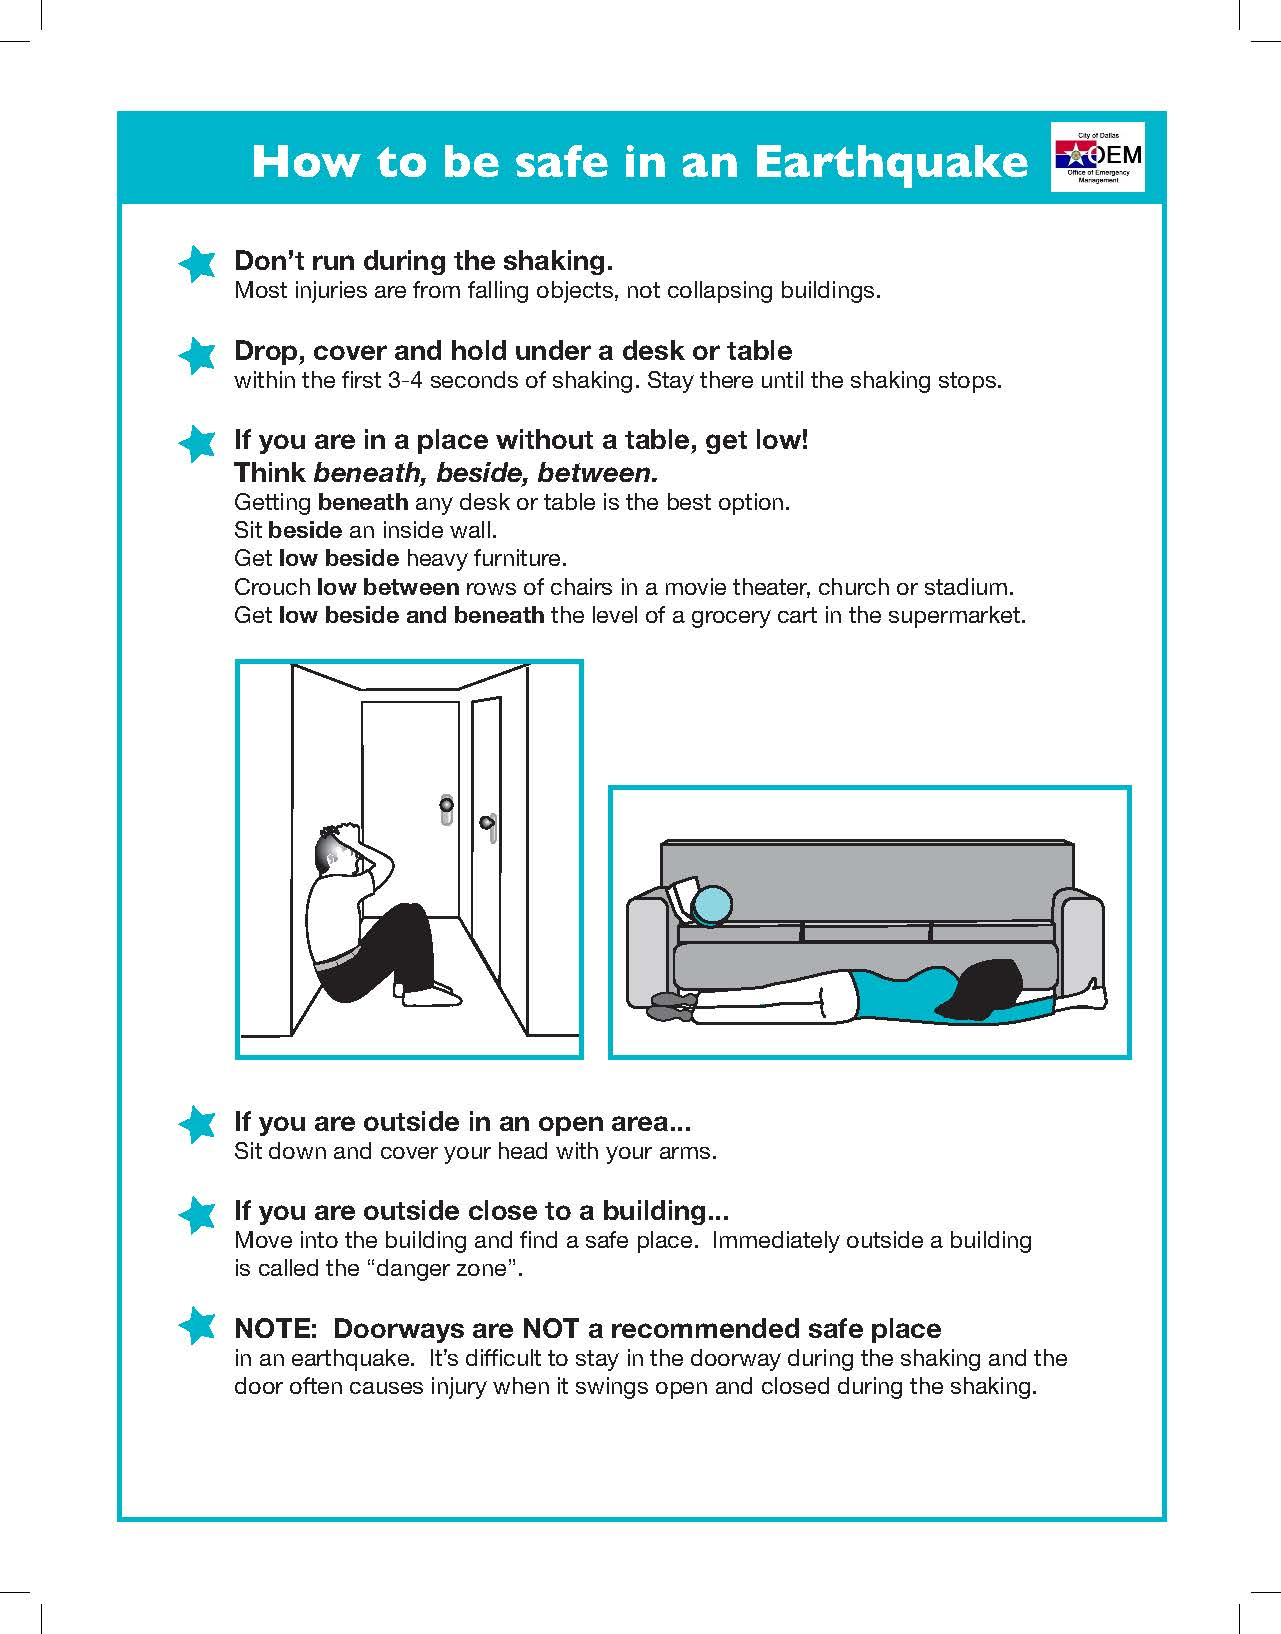 how to be safe in an earthquake infographic